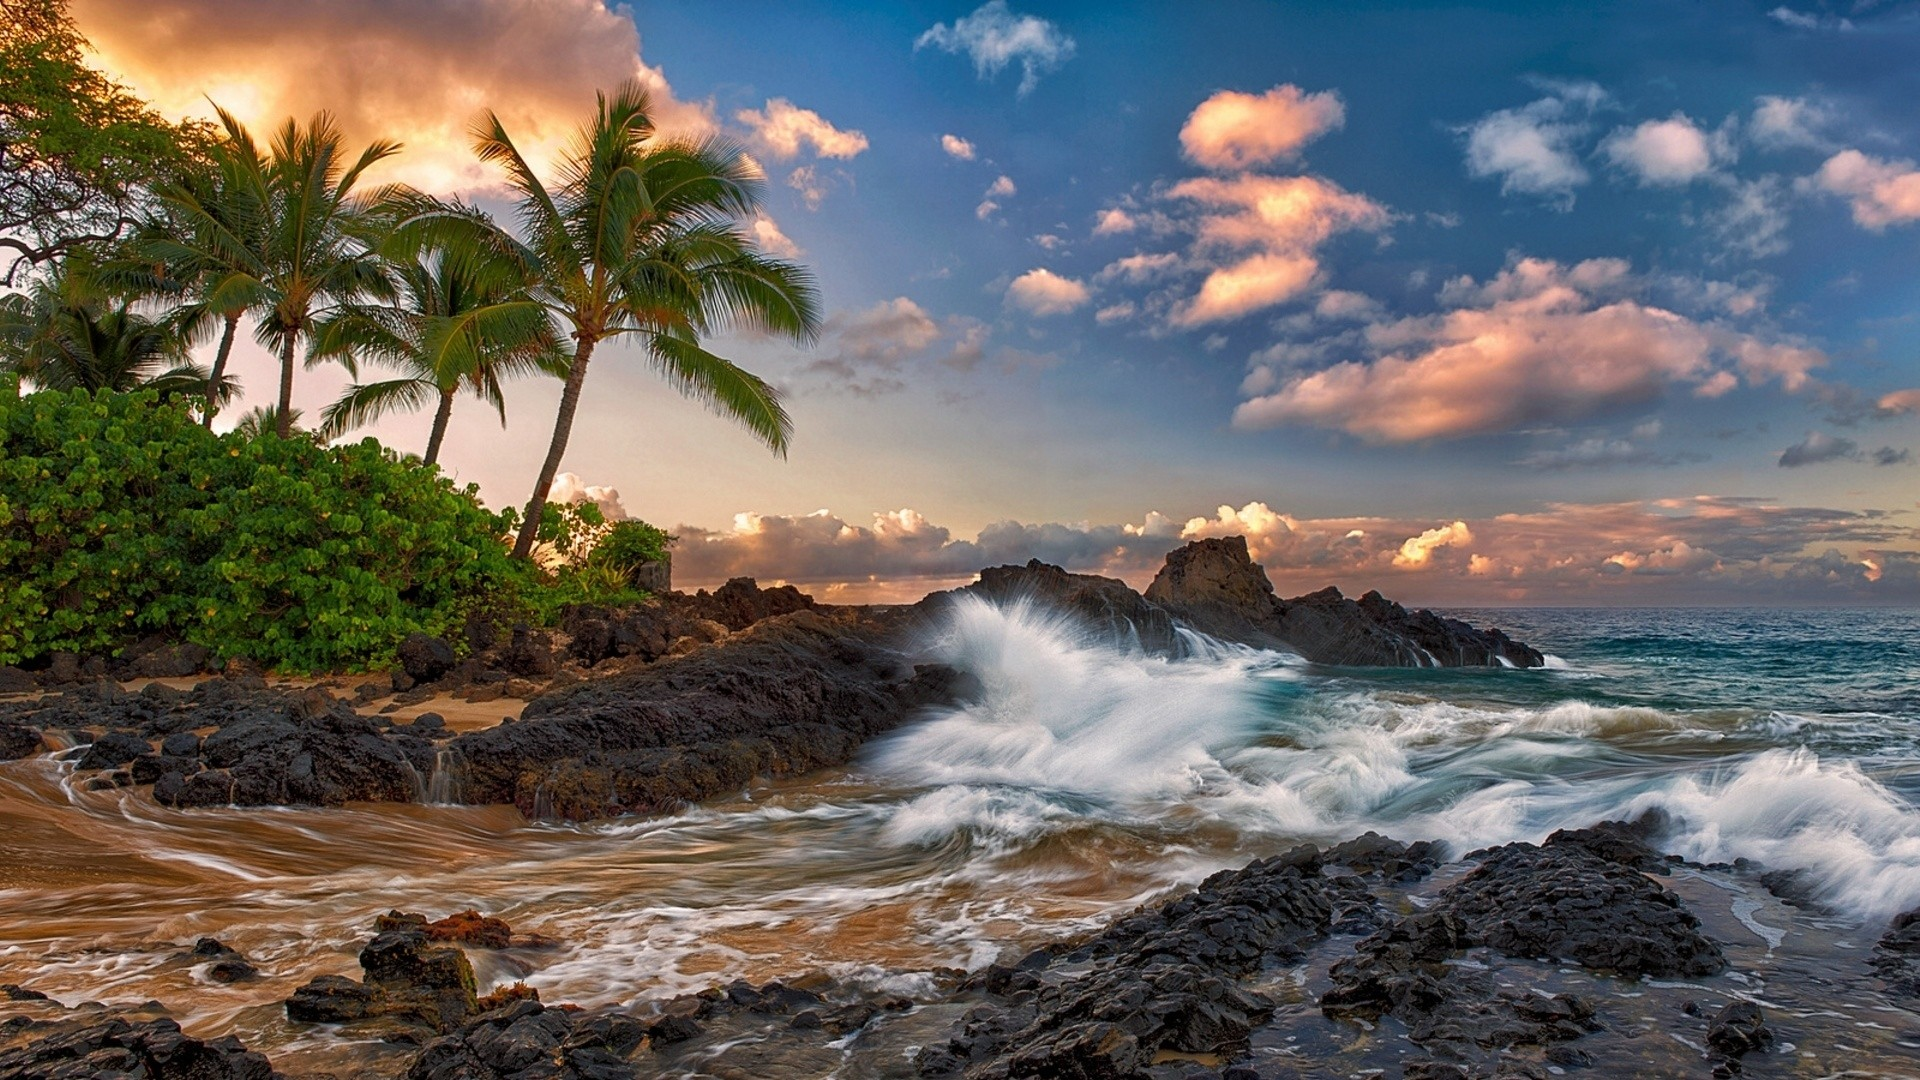 1920x1080 Preview wallpaper maui, hawaii, pacific ocean, rock, surf, rocks, palm